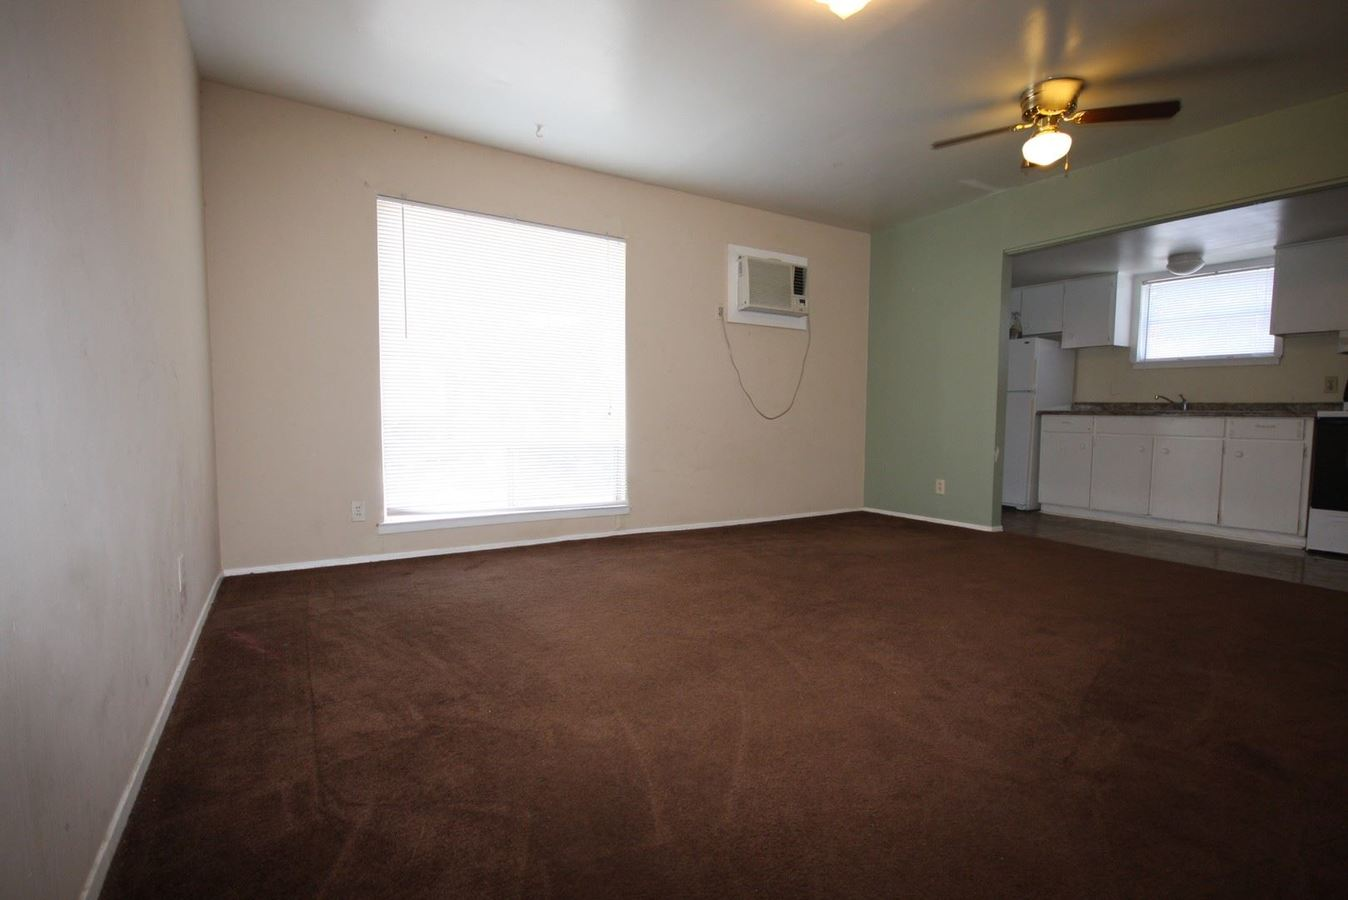 1 Bedroom 1 Bathroom Apartment for rent at 106 Andrews in San Antonio, TX